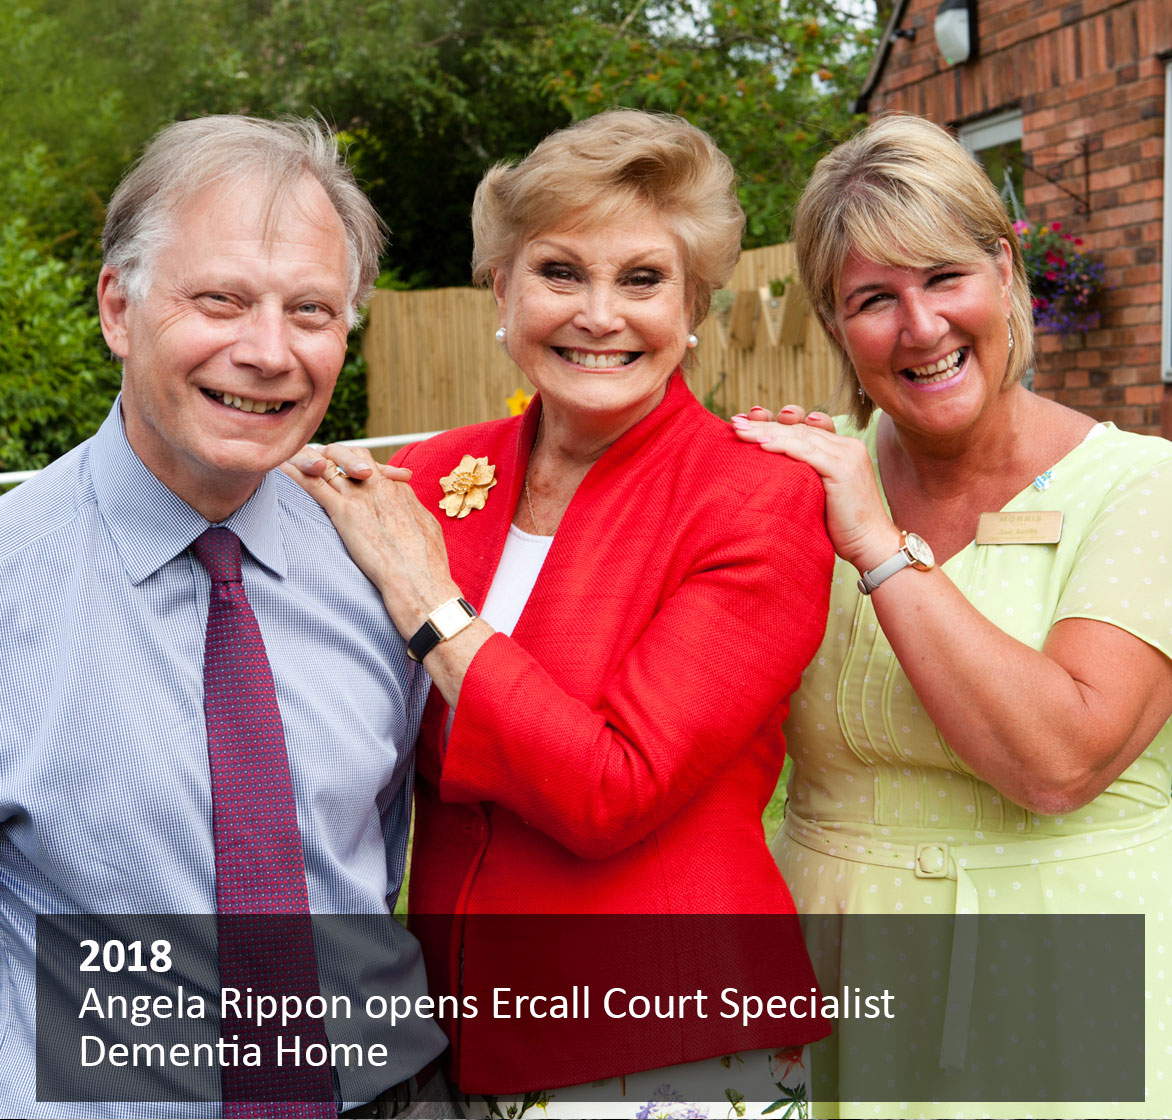 Angela Rippon opens Ercall Court Specialist Dementia Home